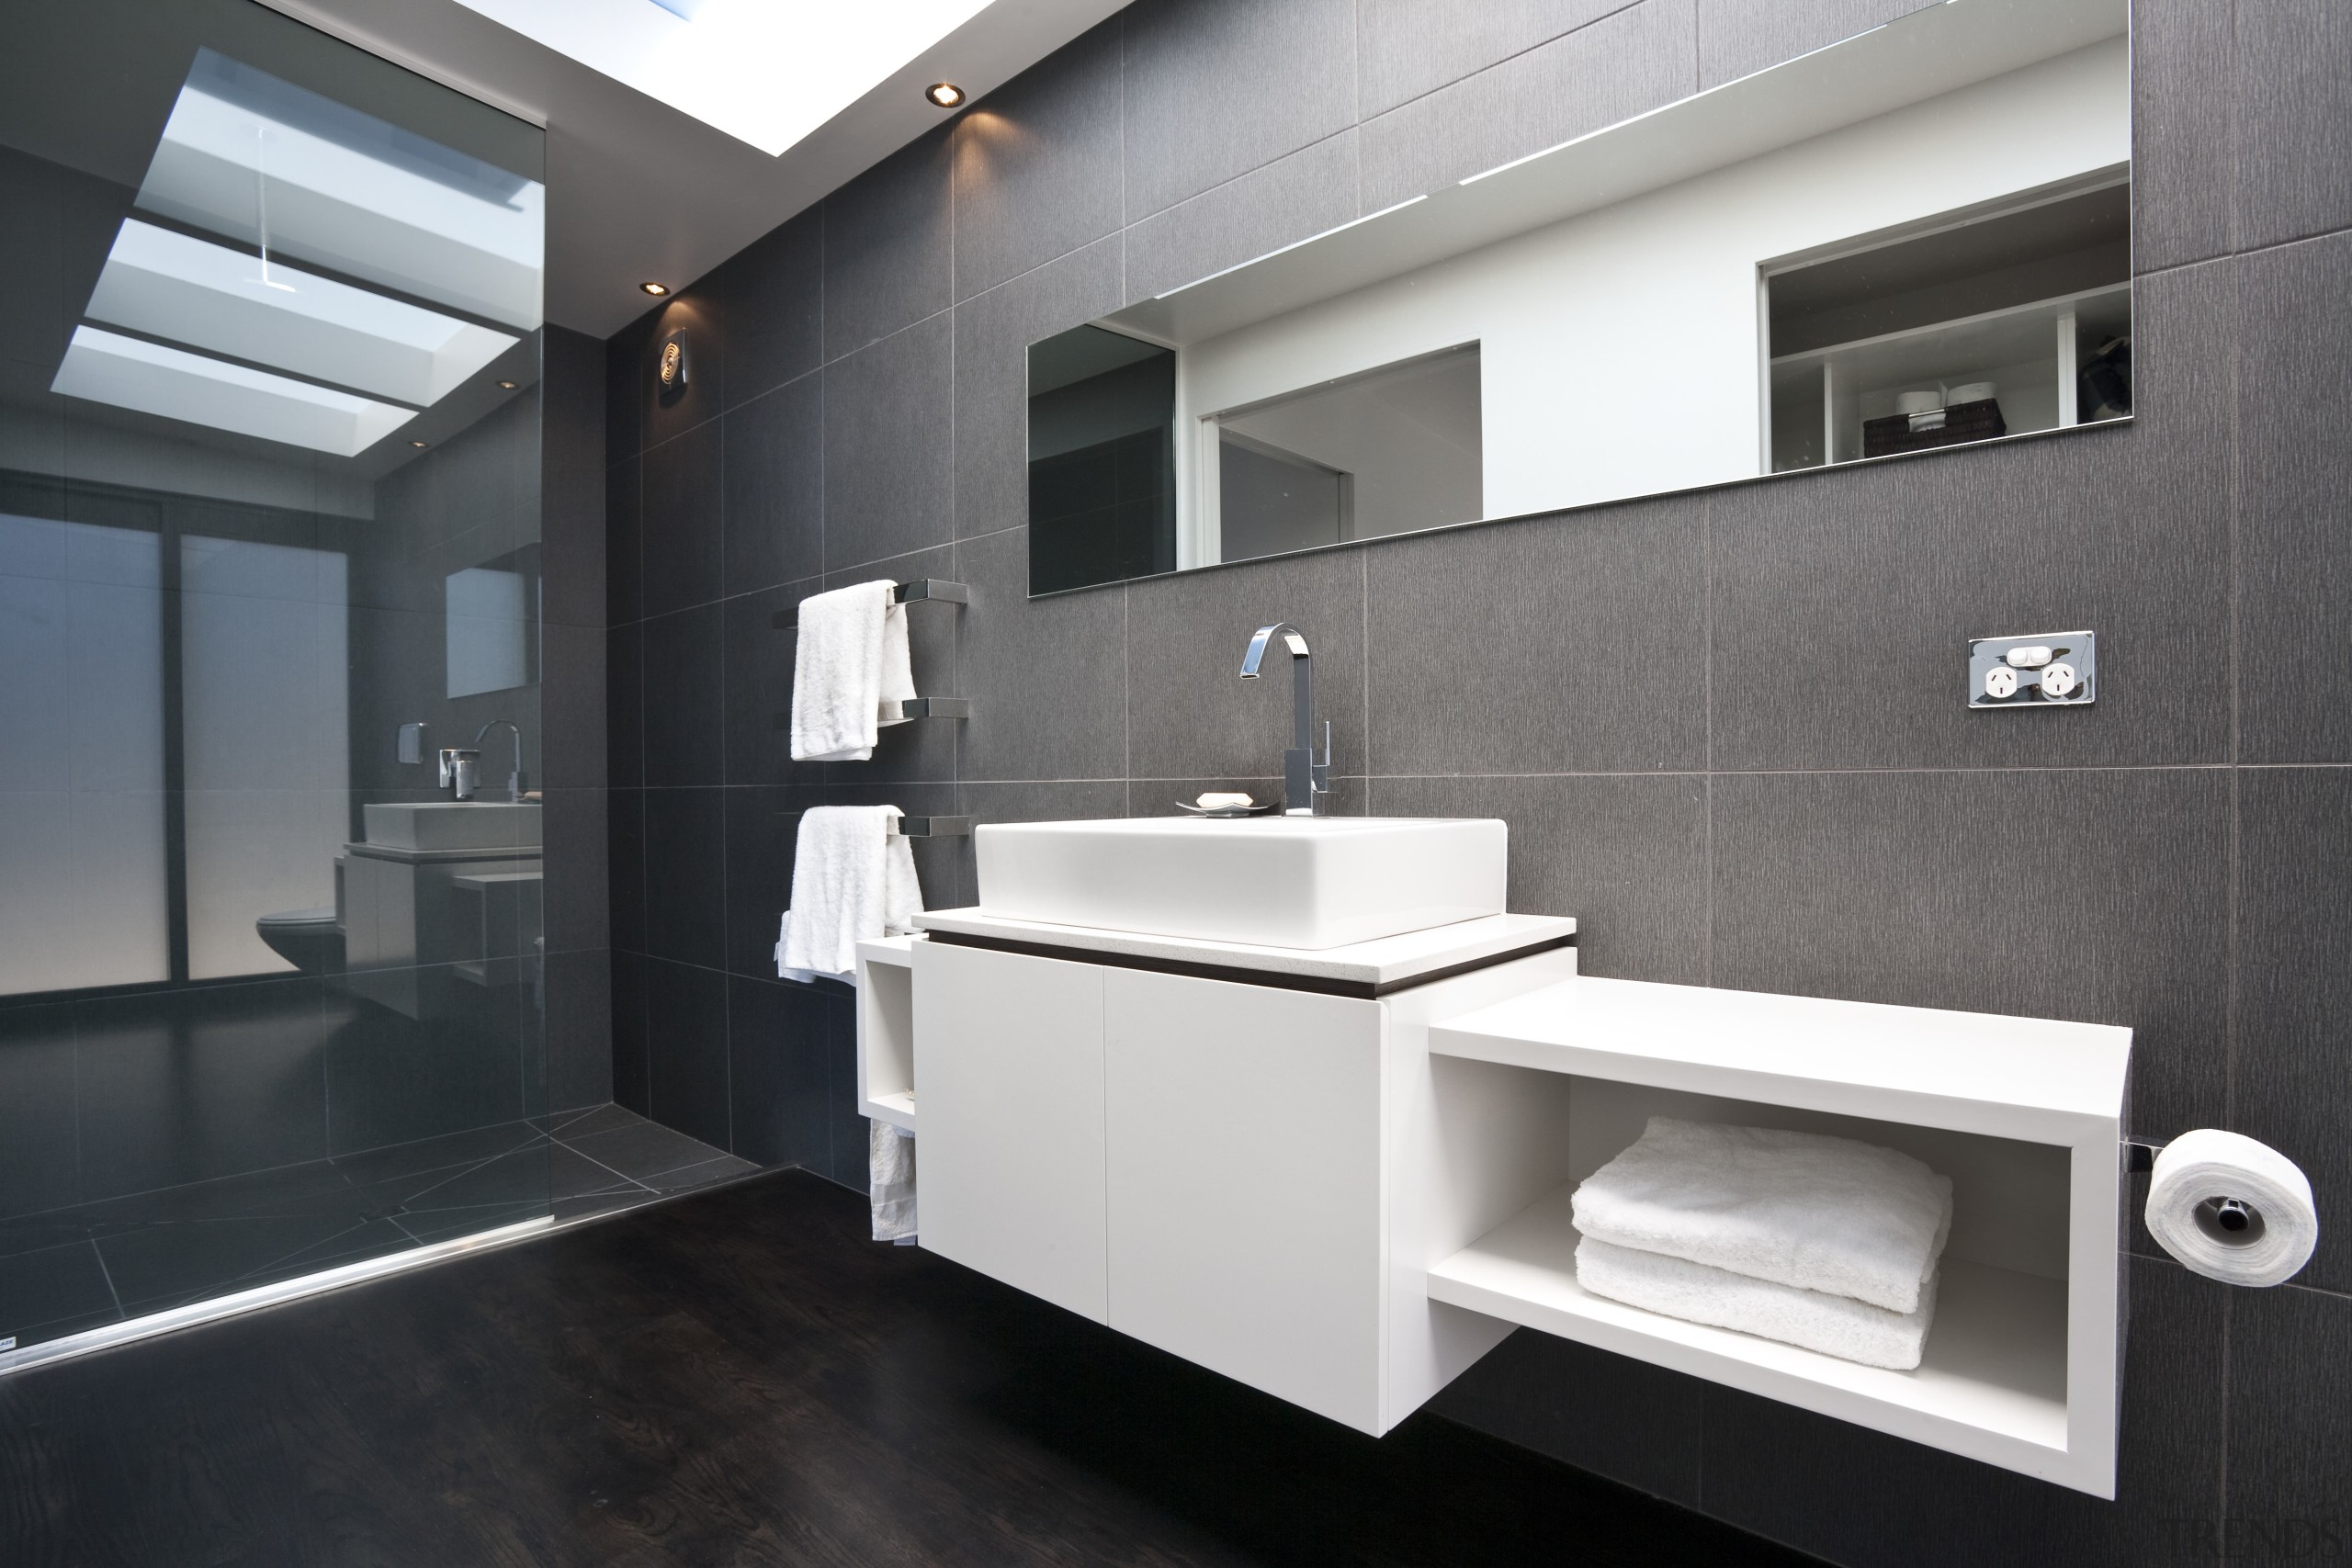 View of the bathroom featuring white cabinetry and architecture, bathroom, bathroom accessory, floor, interior design, product design, room, sink, black, gray